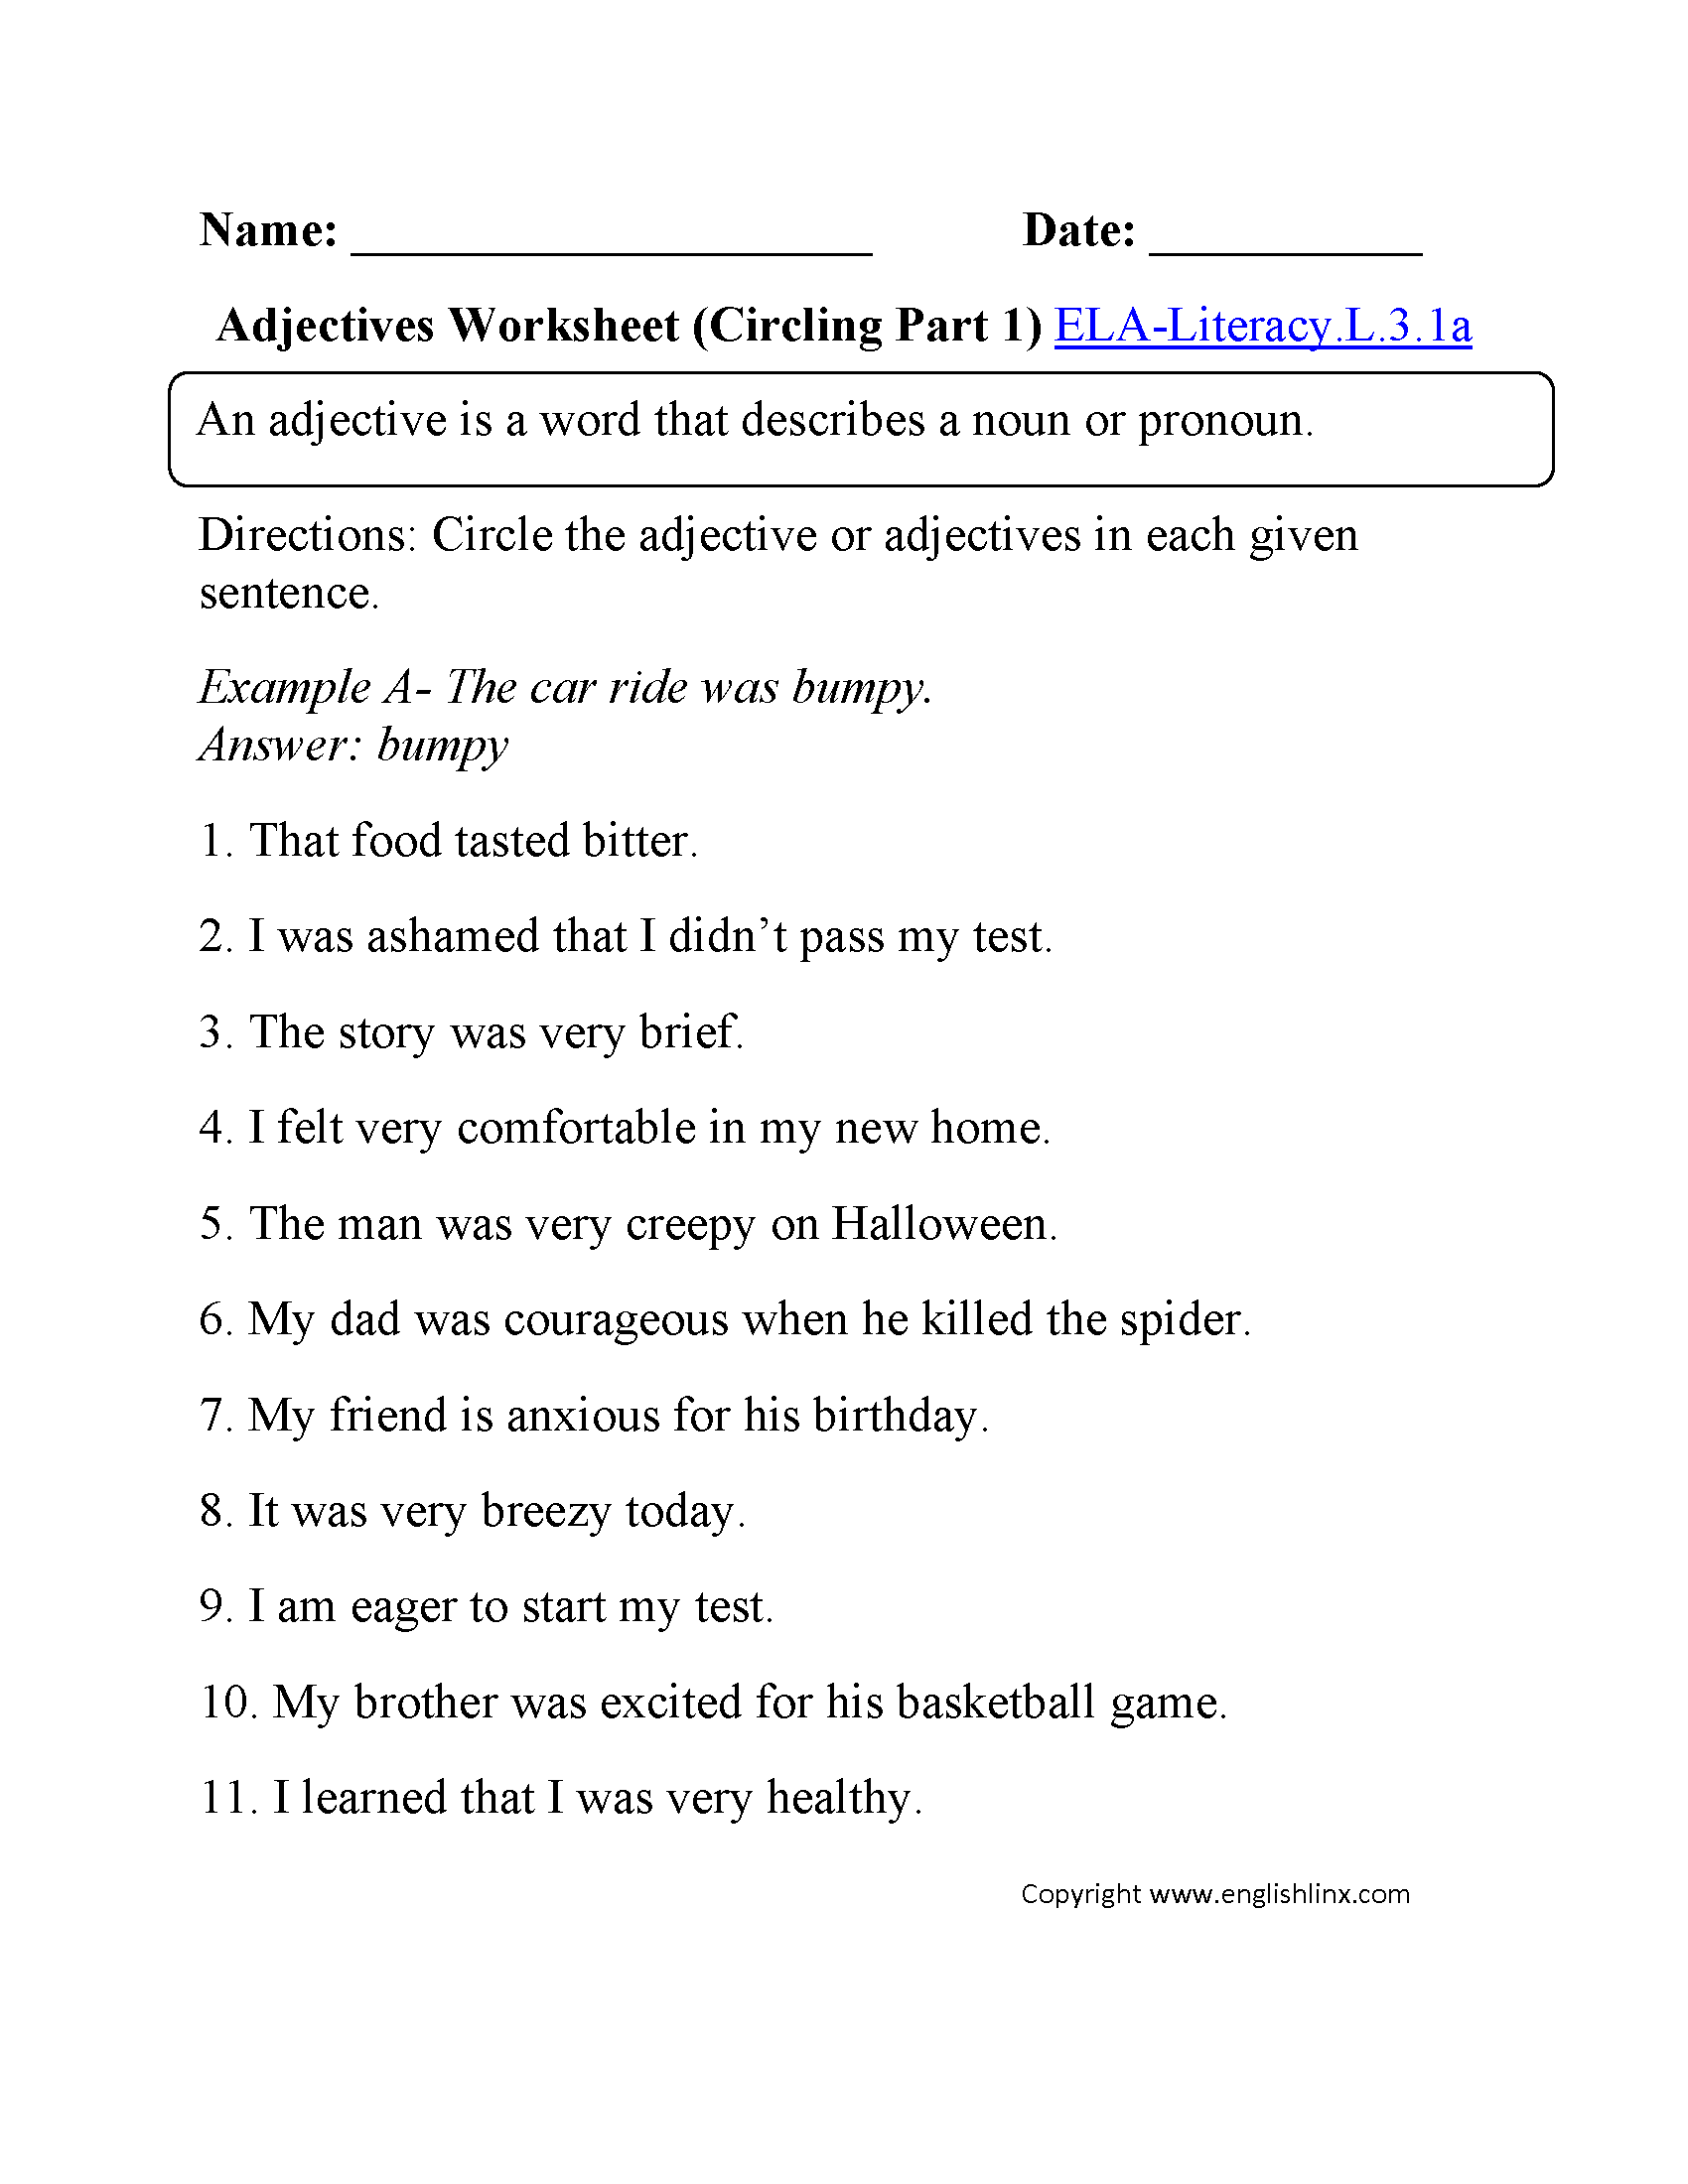 Adjectives Worksheet 1 ELA-Literacy.L.3.1a Language Worksheet   Free  grammar worksheet [ 2200 x 1700 Pixel ]